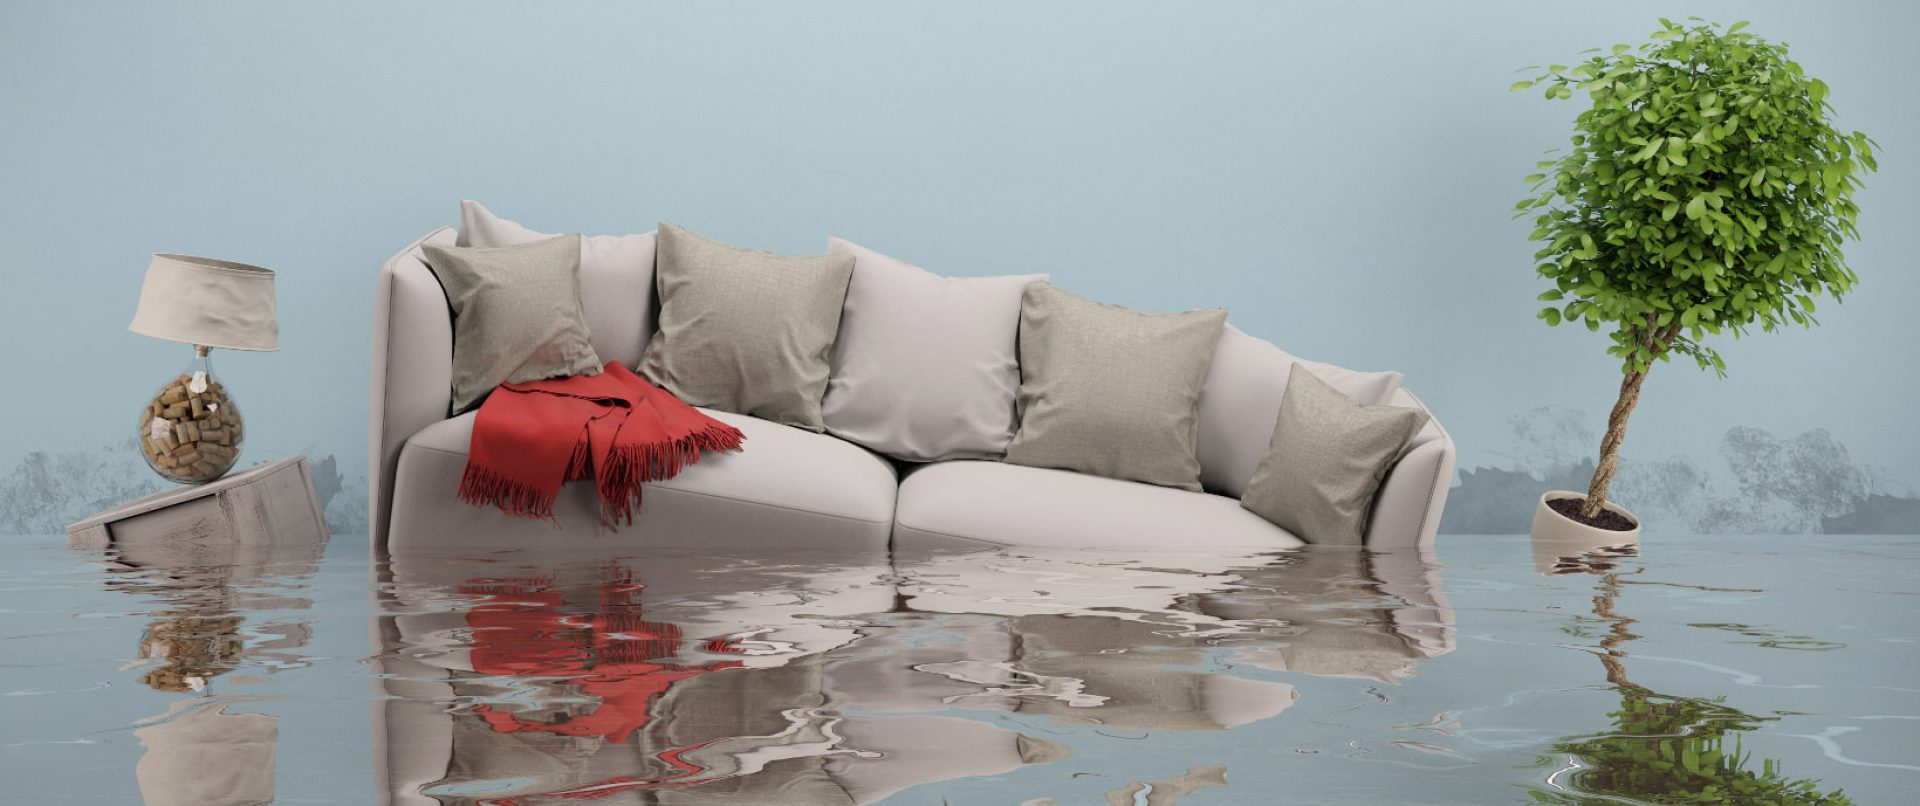 Water Damage Restoration Services in Belmore